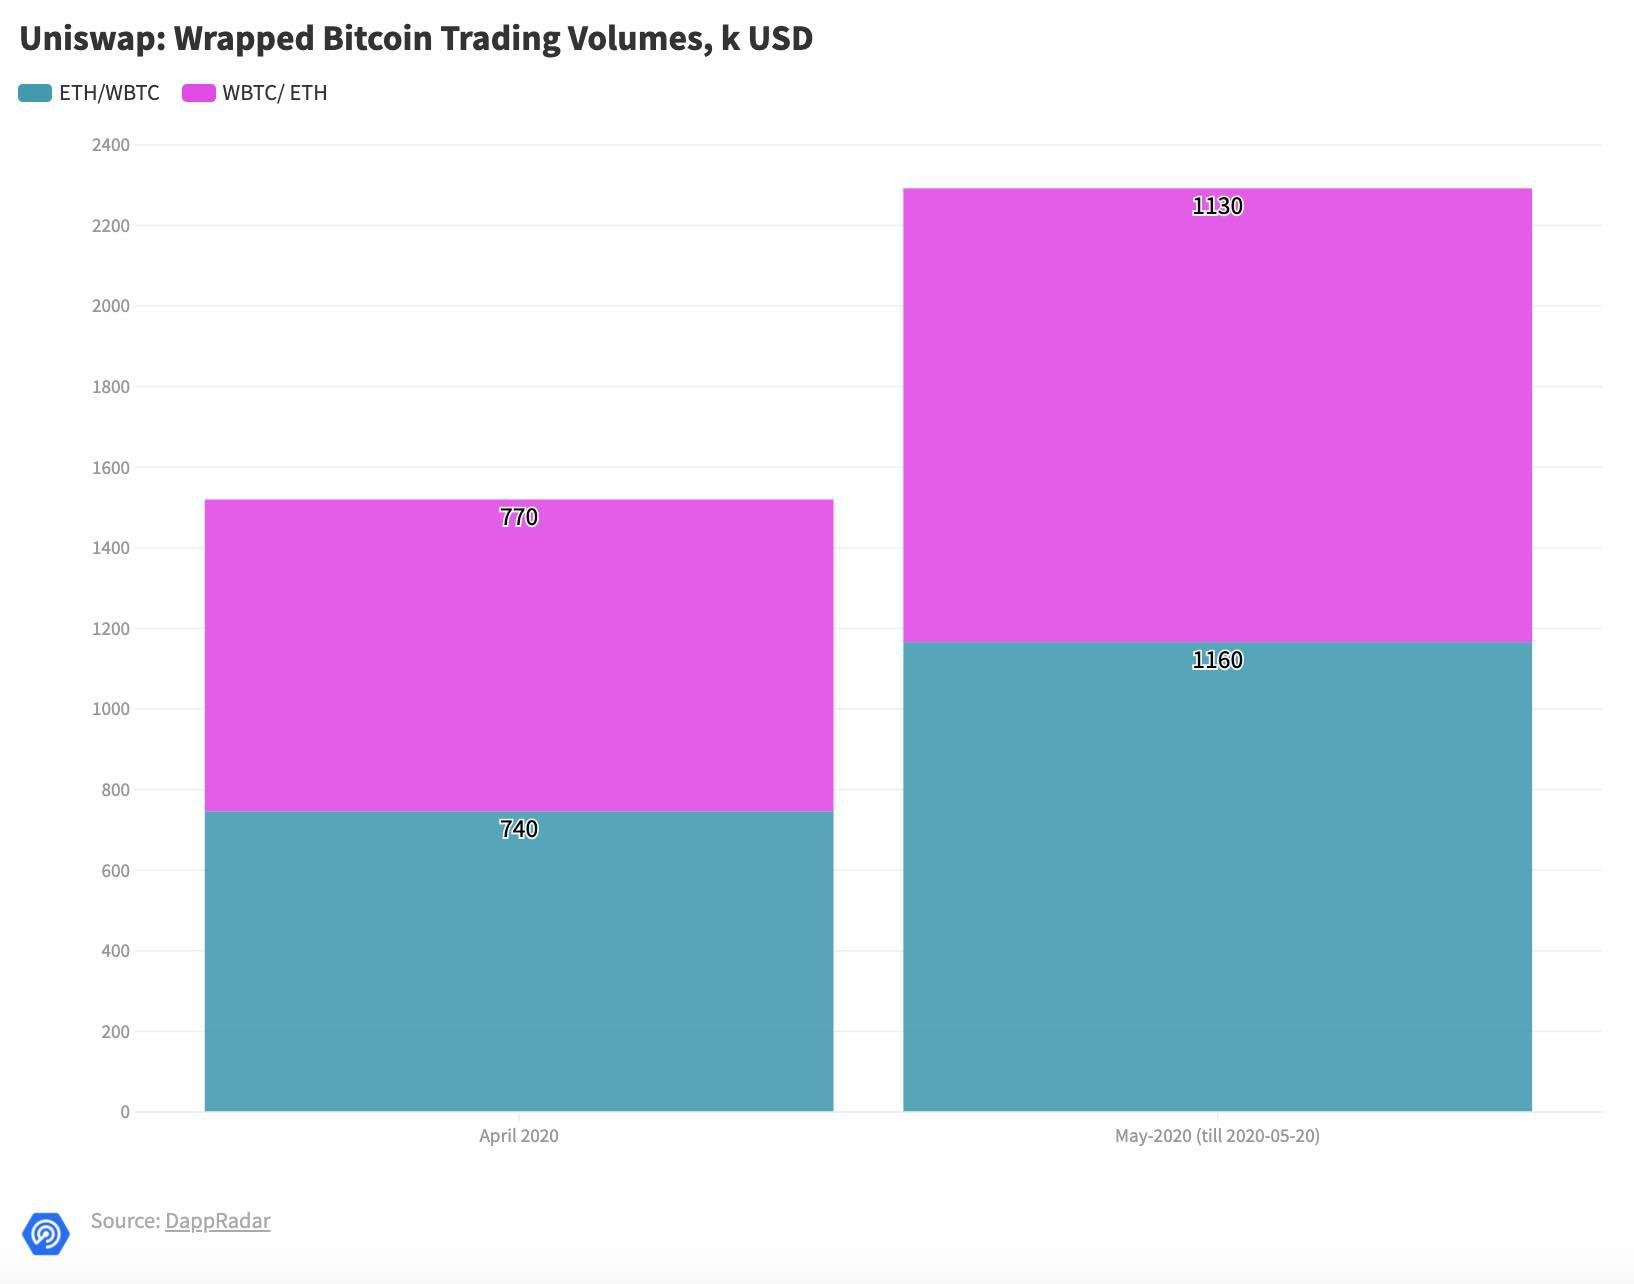 WBTC trading volumes spike on Uniswap because of DAI addition, May 2020